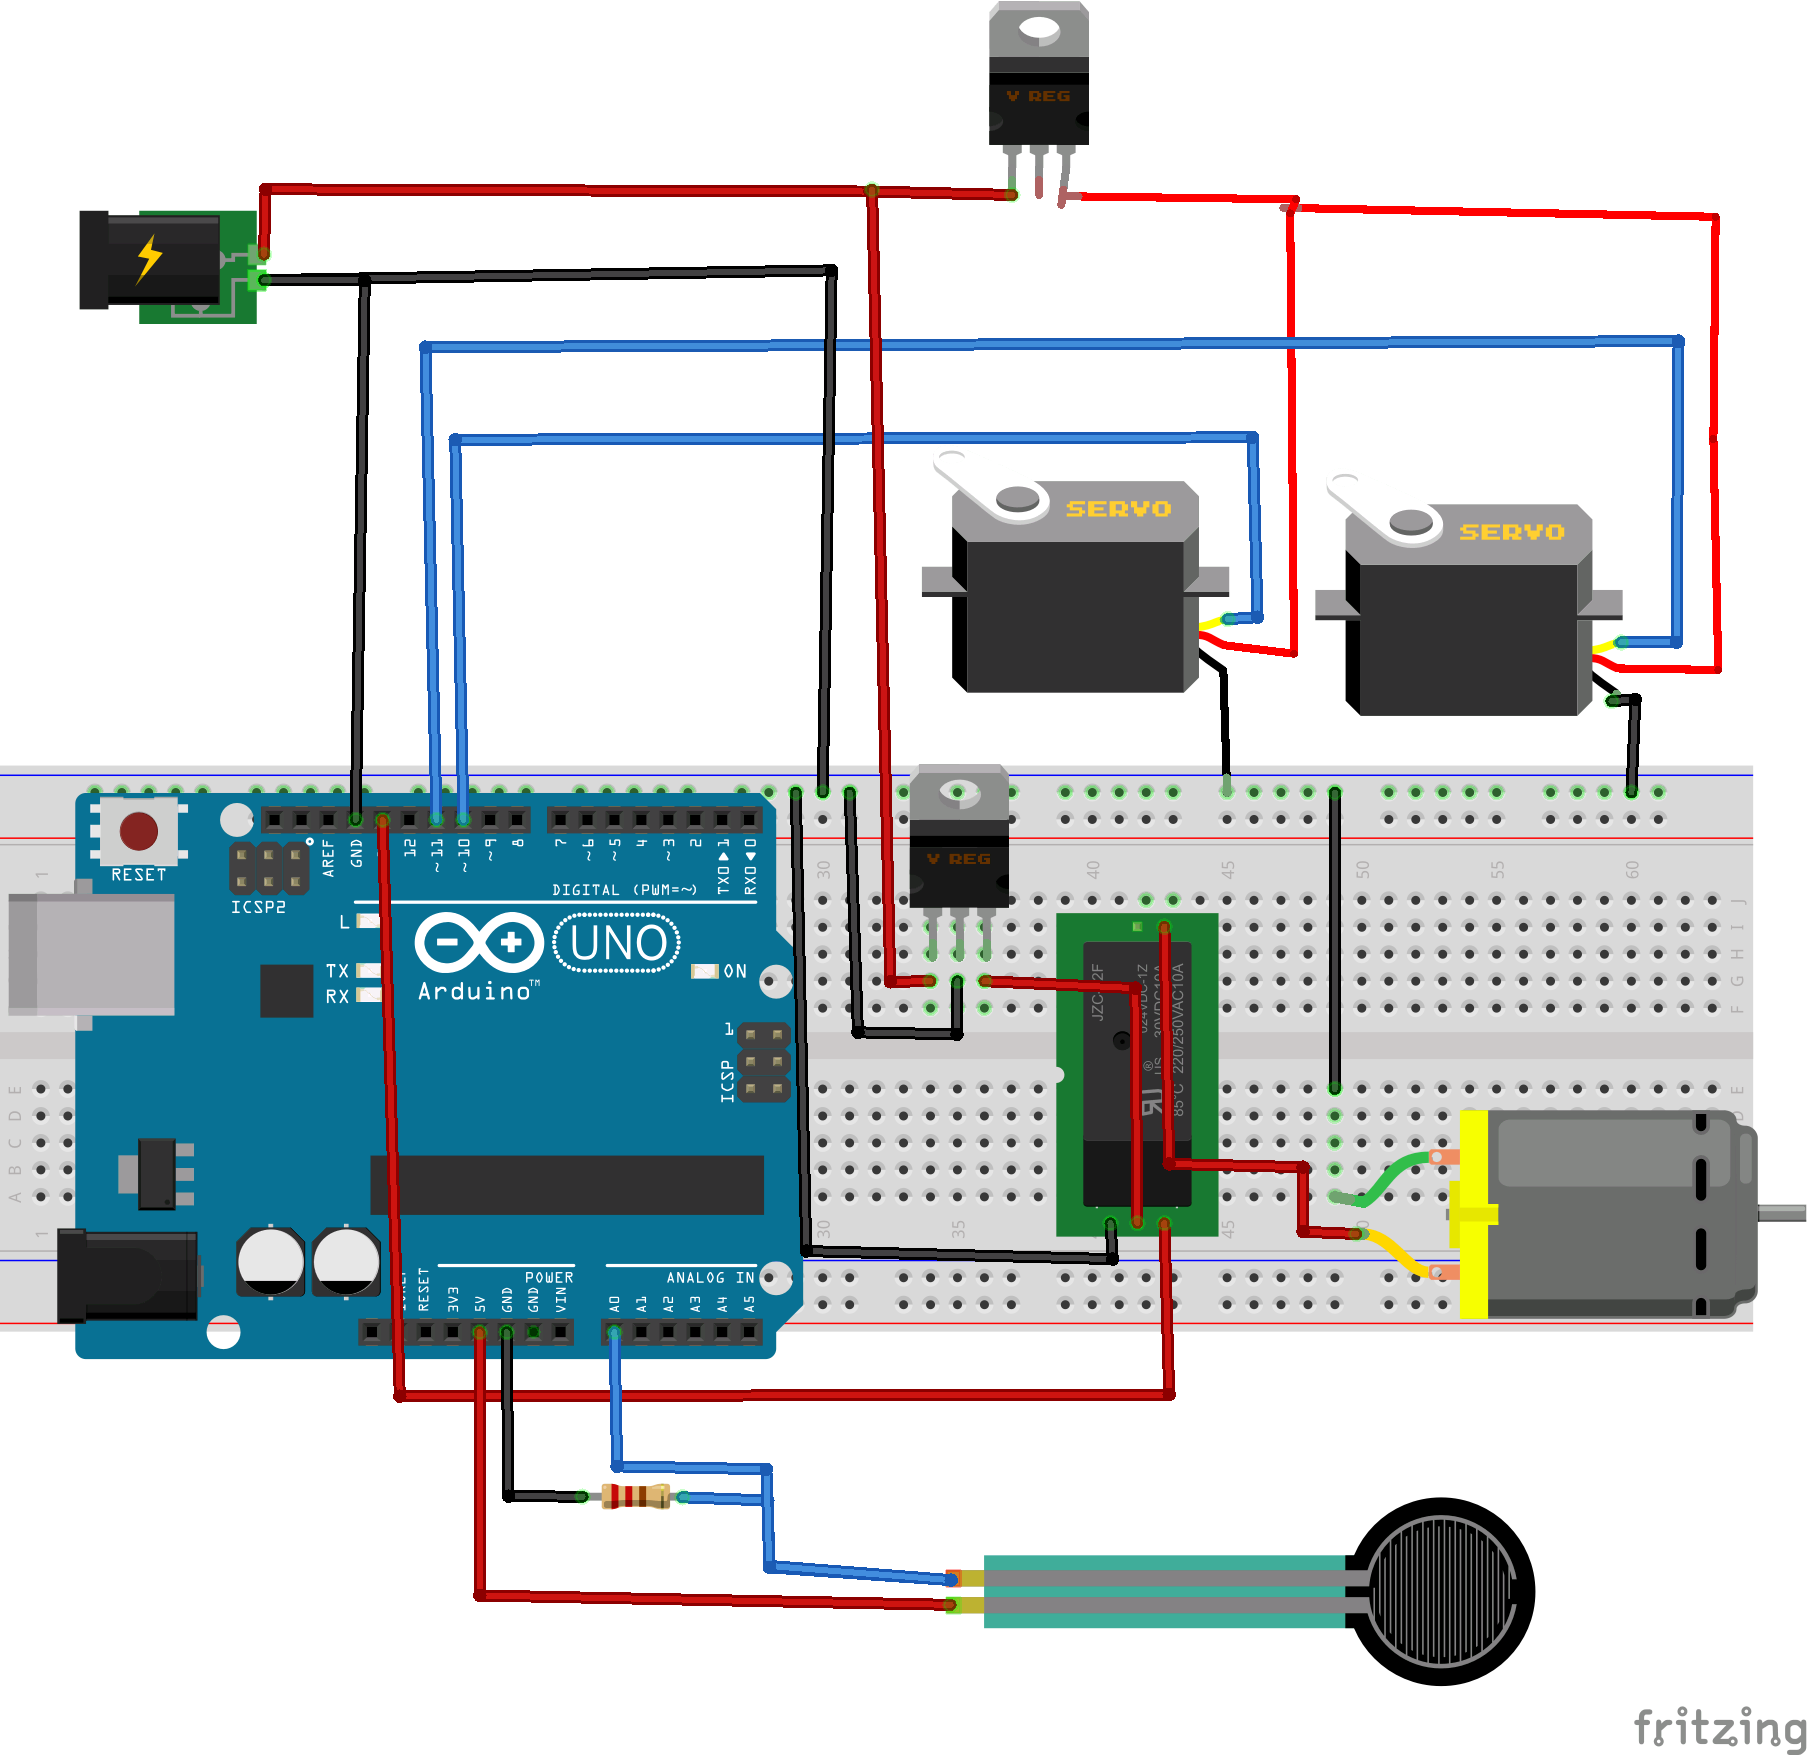 arduino parking lot Good morning guys, i am creating this thread for a reason i am finishing my 12th grade at the moment and for my final project, i am doing a smart parking lot controled by arduino.